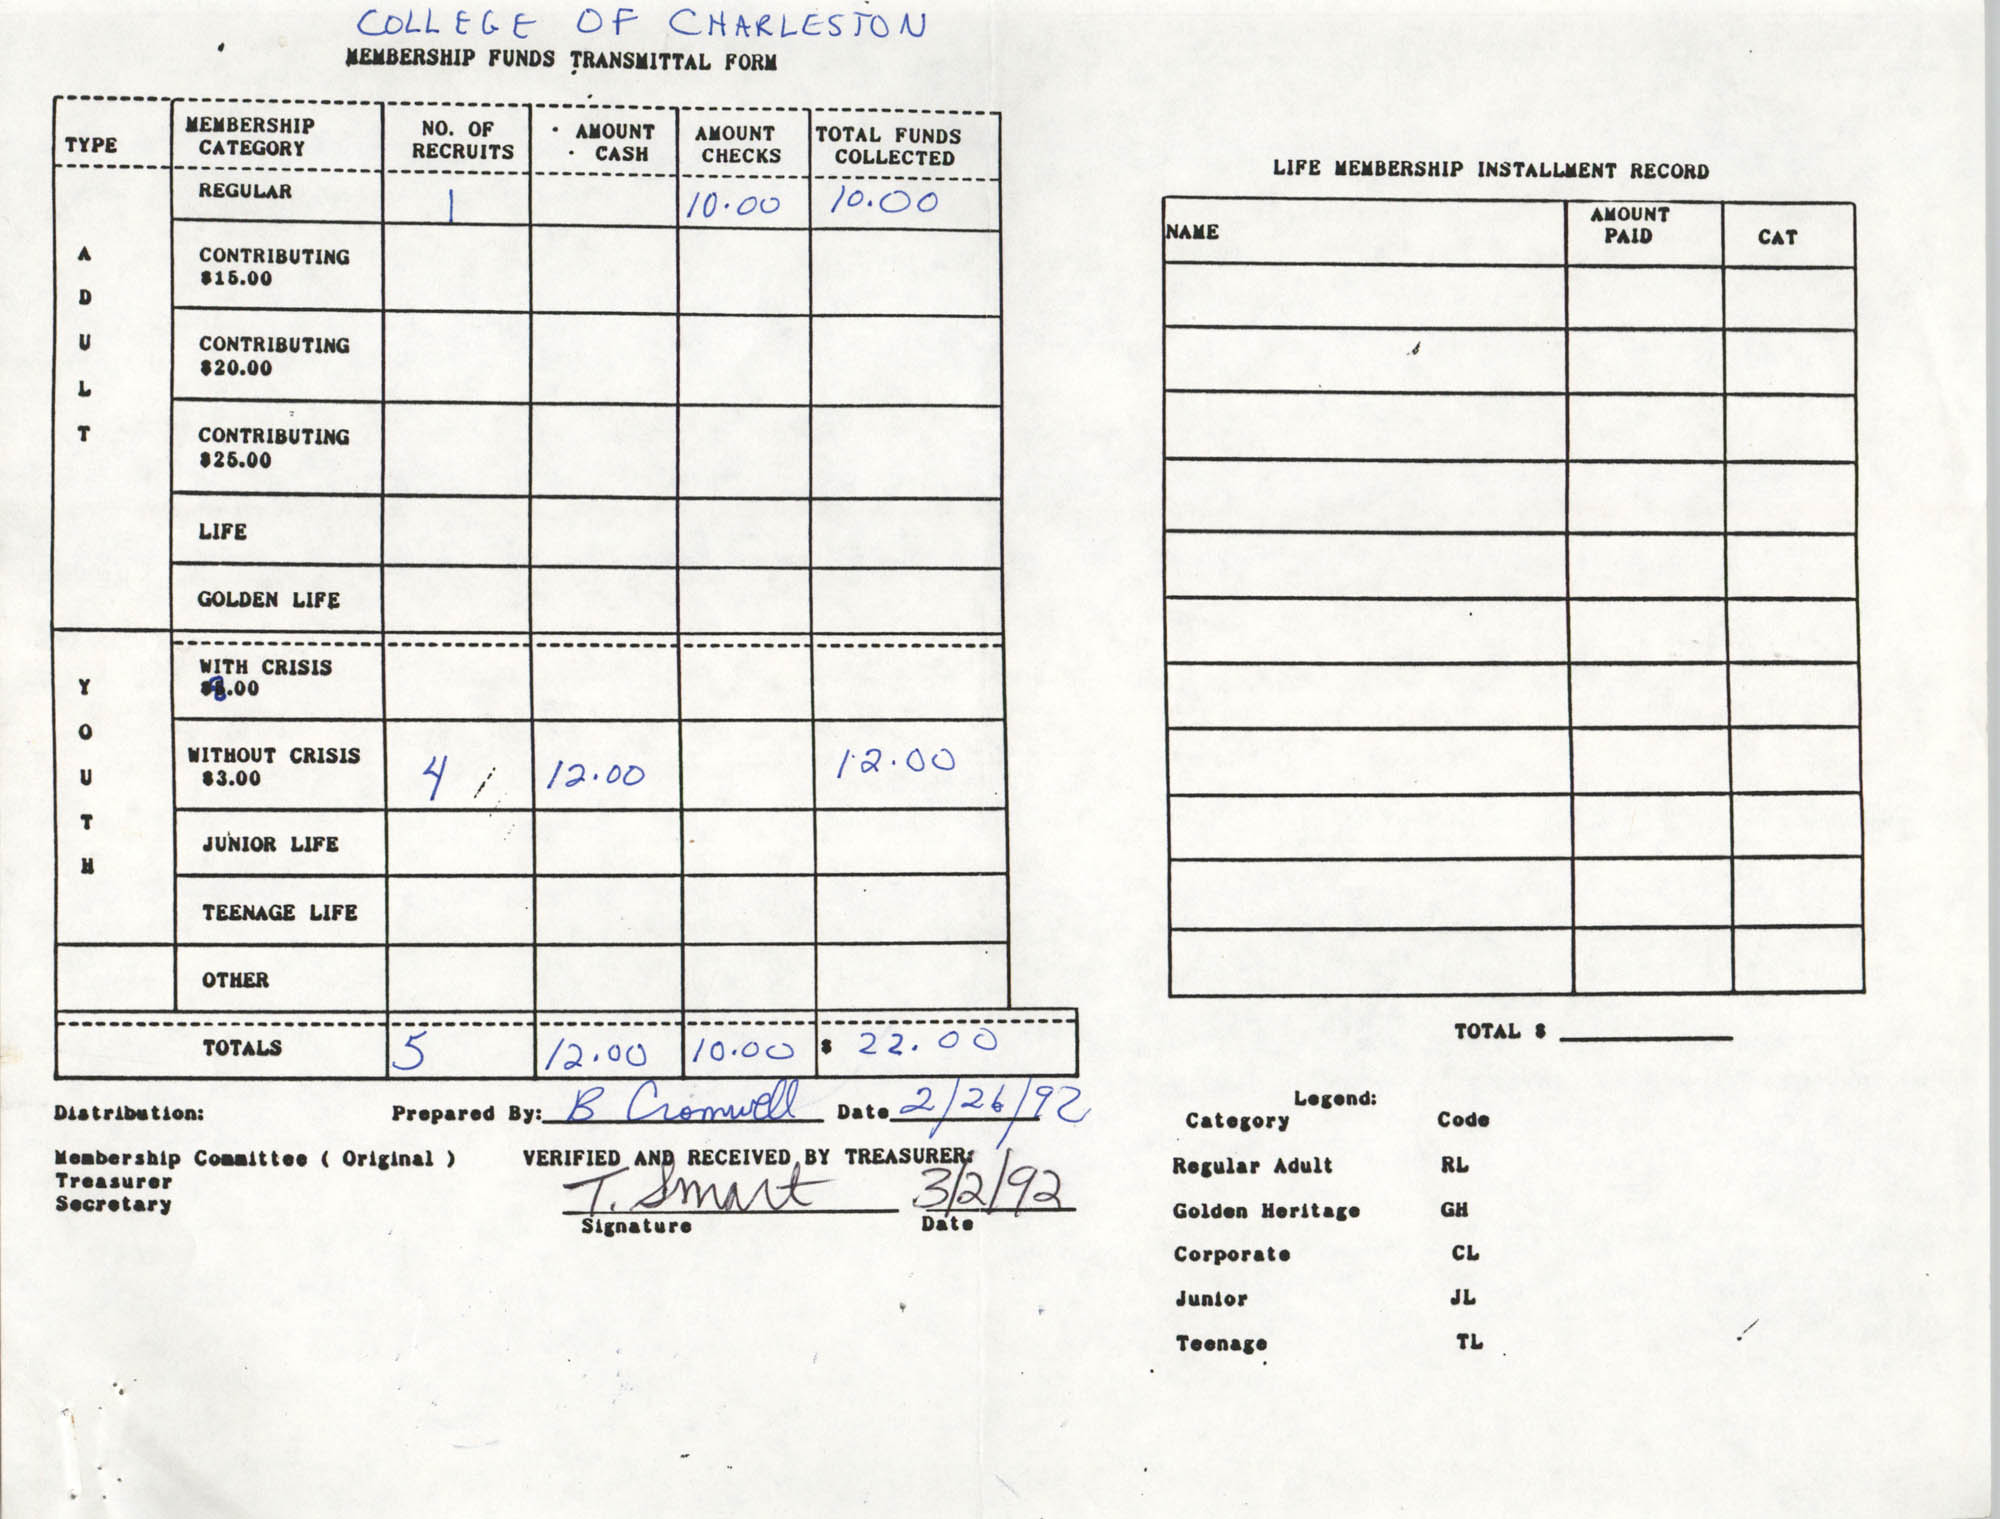 Charleston Branch of the NAACP Funds Transmittal Forms, March 1992, Page 1